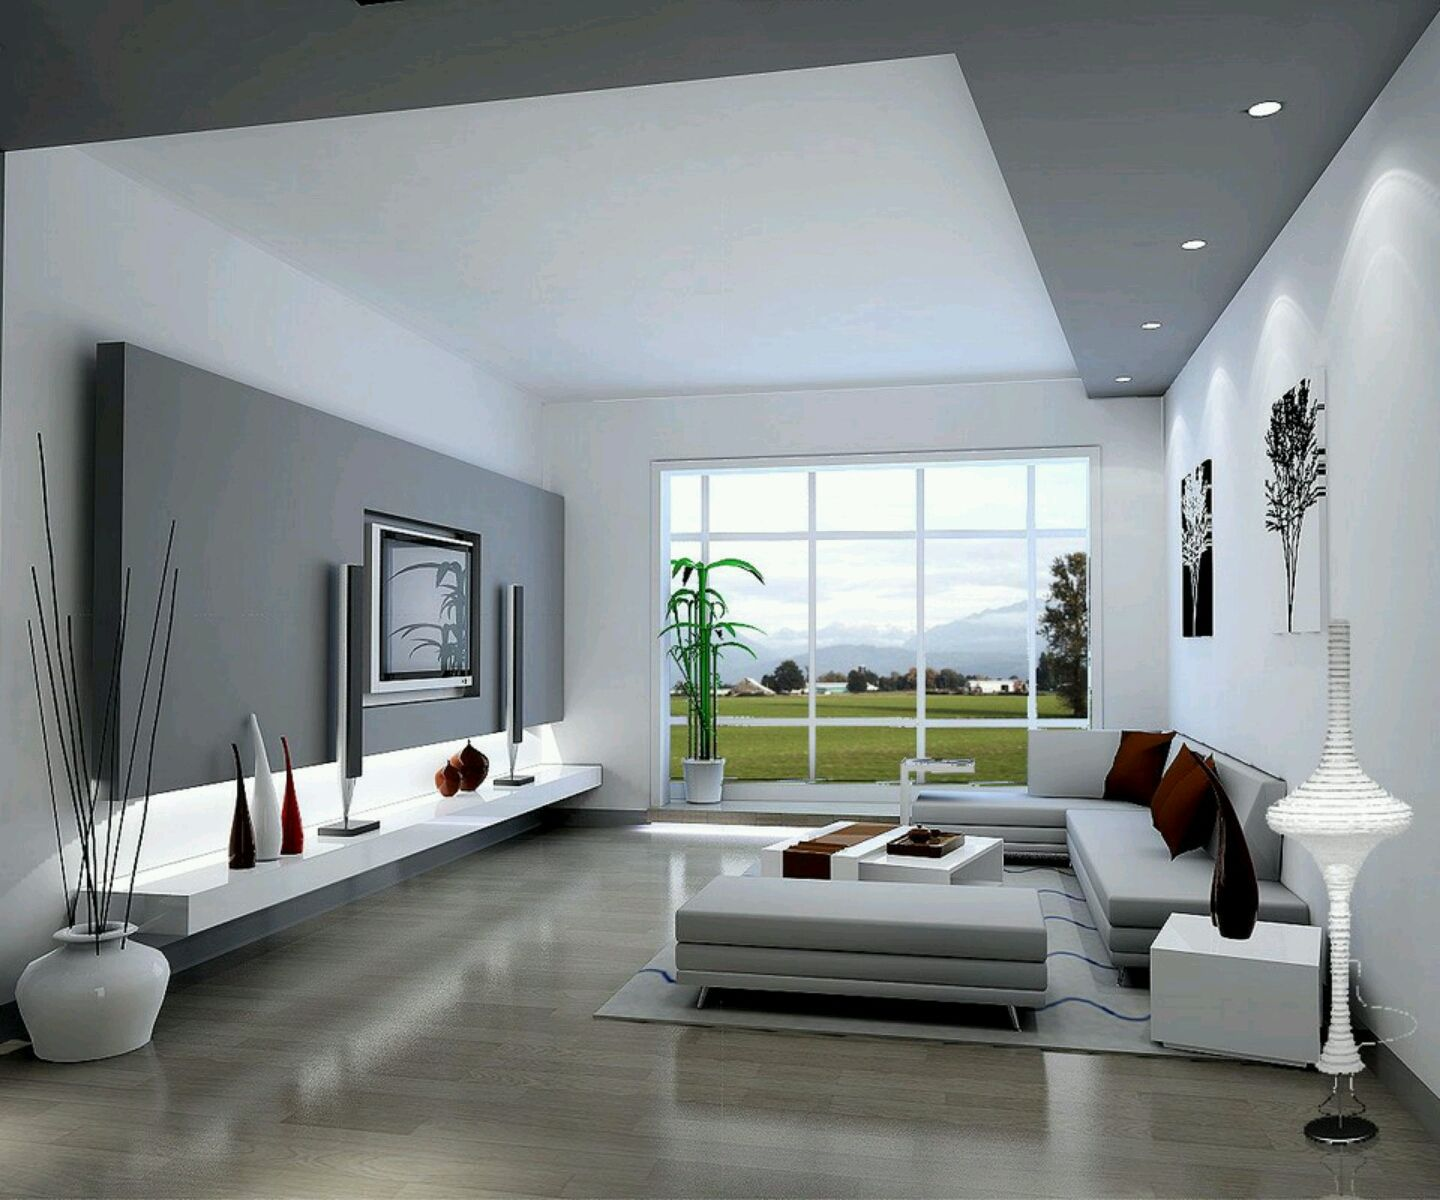 Living Room Interior Decorating Ideas. Living Room Modern Ideas On Stylish Home Decor Styles Contemporary  Wall Cabinet Design White And Grey Paint Color Painting 25 Best Designs living rooms